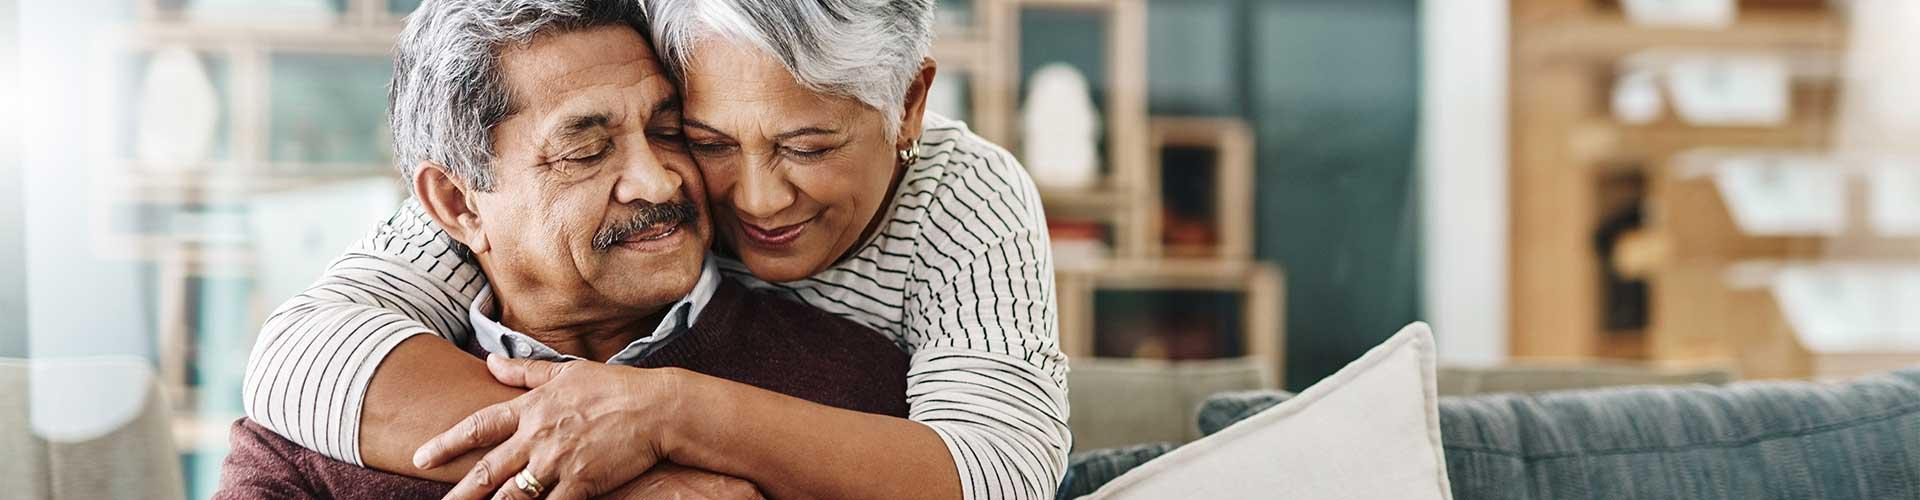 Stock photo of older man and woman embracing